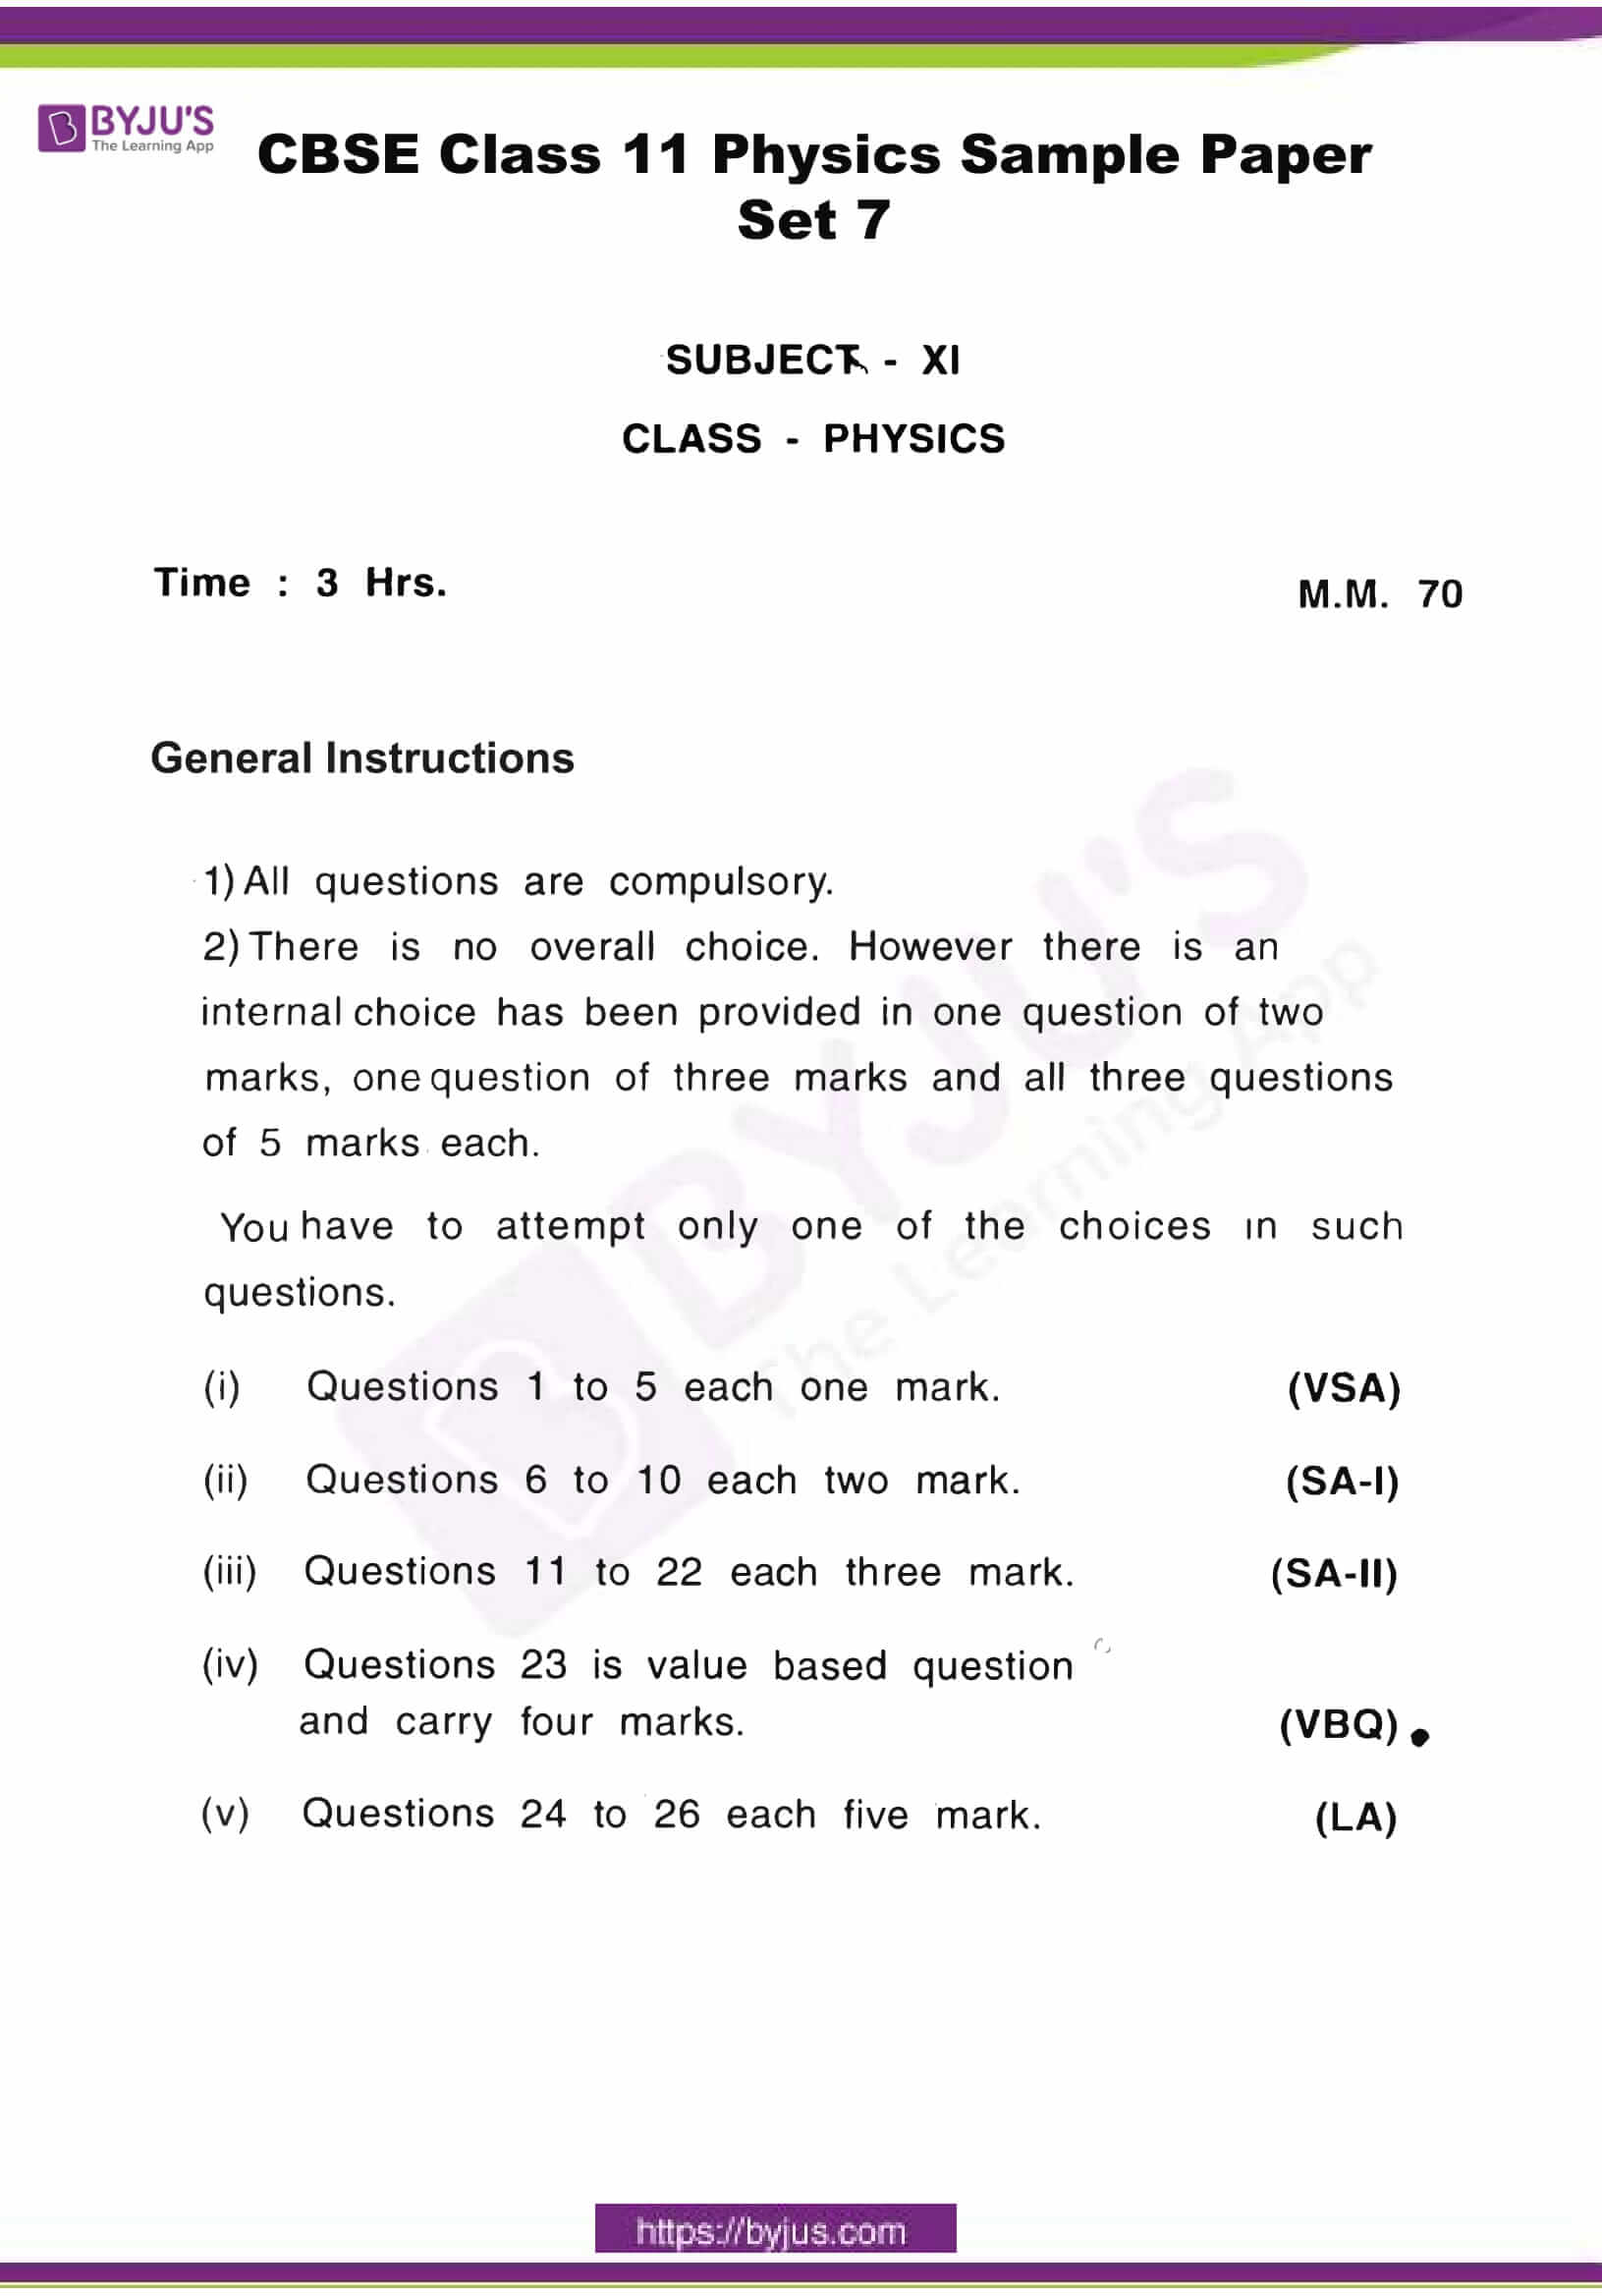 cbse class 11 phy sample paper set 7